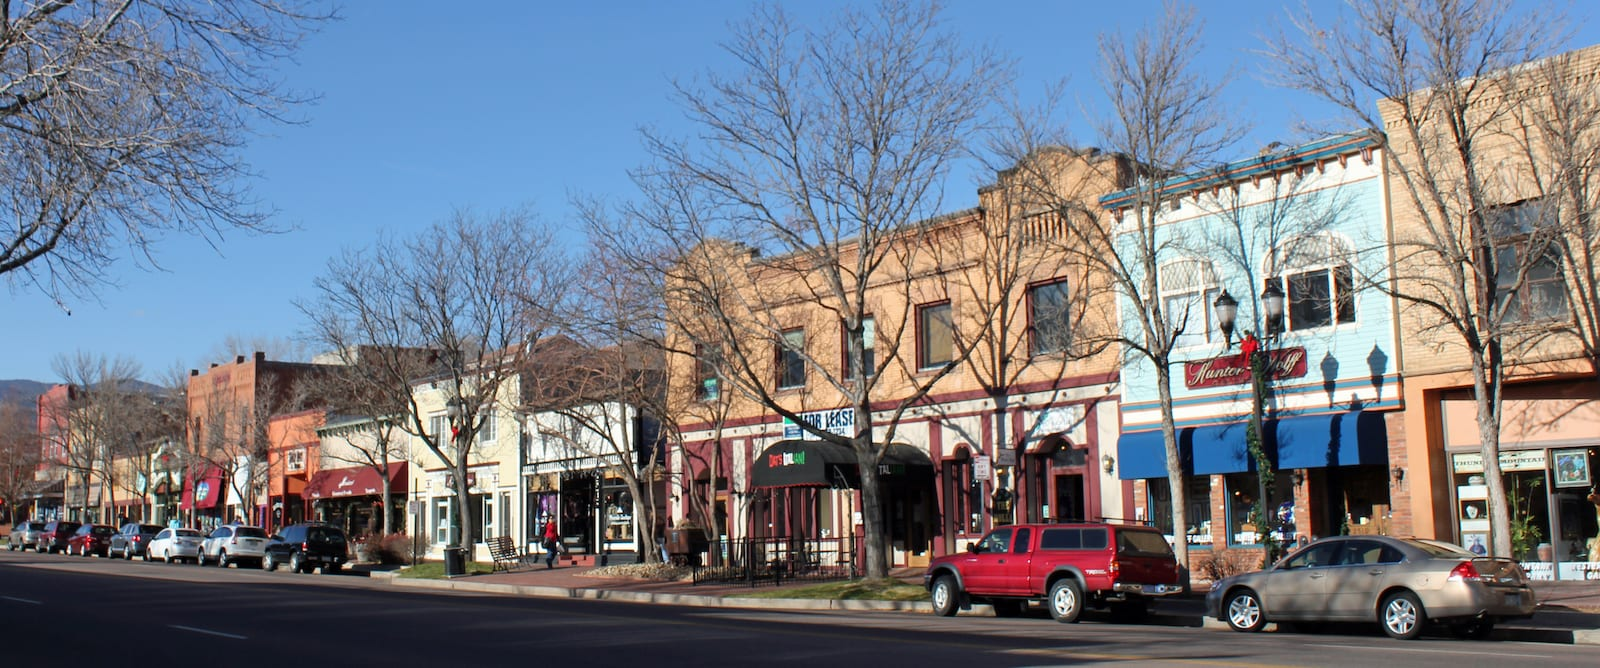 Old Colorado City Historic Commercial District